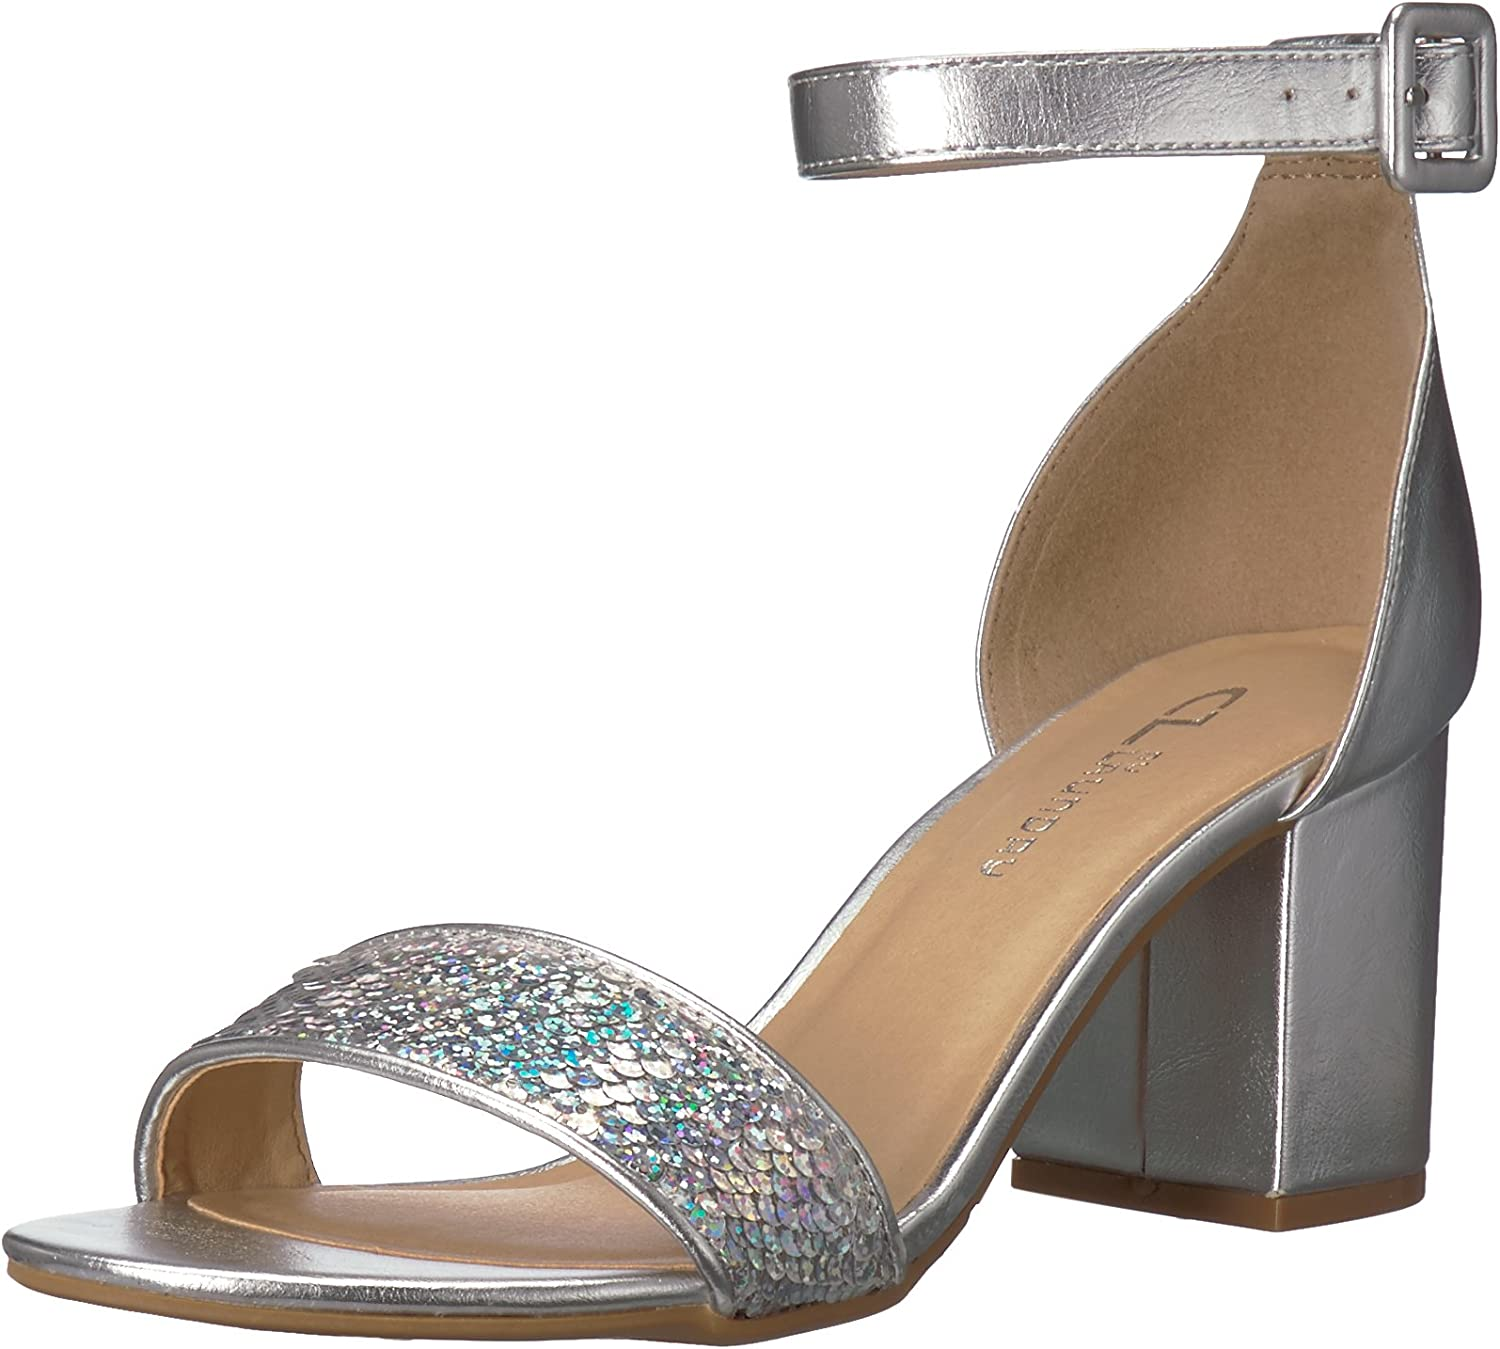 CL by Chinese Laundry Women's Jody Heeled Sandal